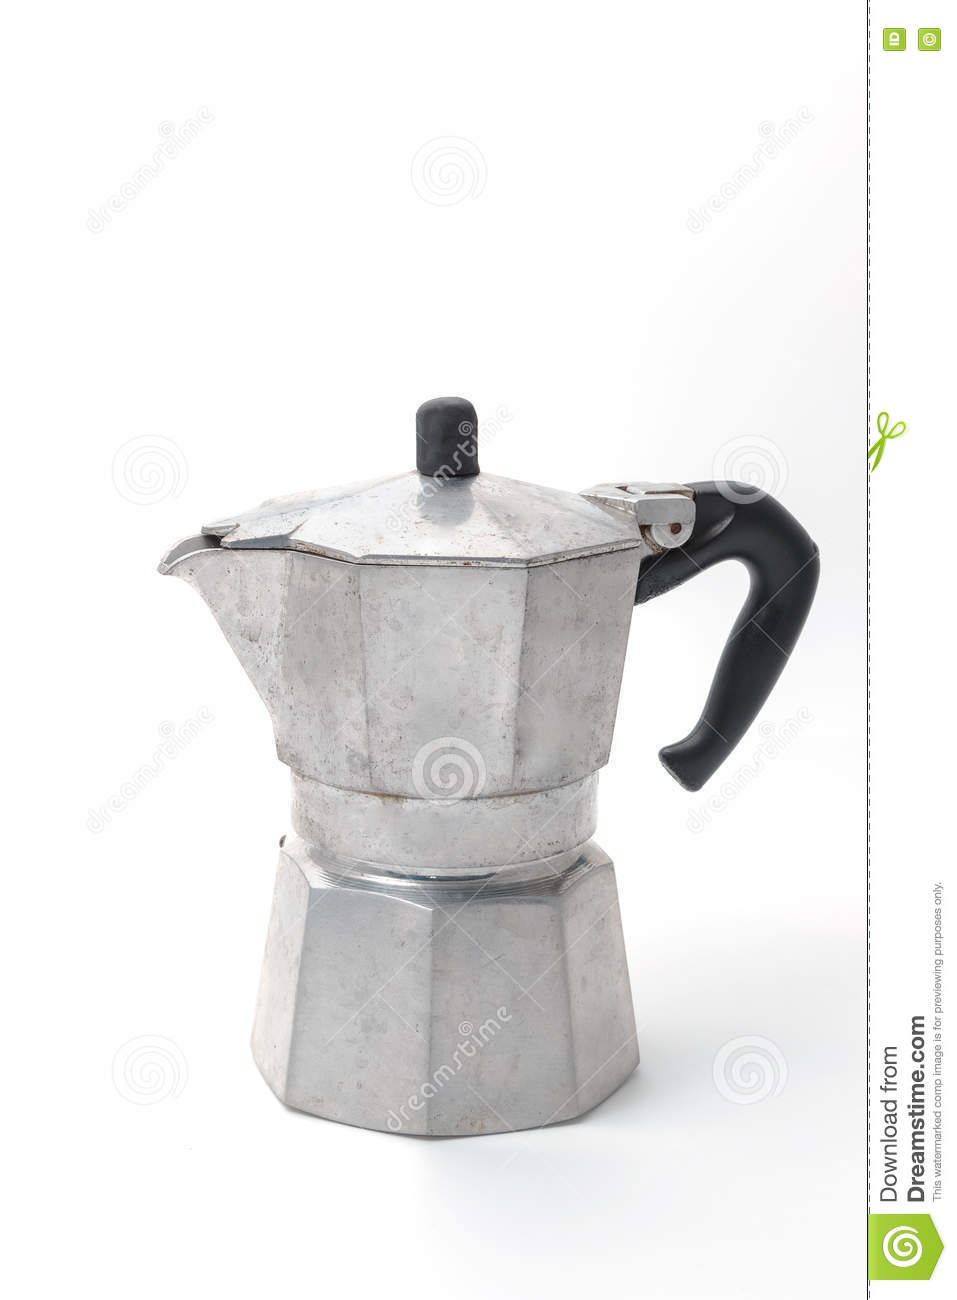 How To Use Vintage Coffee Maker : Old Coffee Maker In Vintage Style Isolated Stock Photo - Image: 80834936